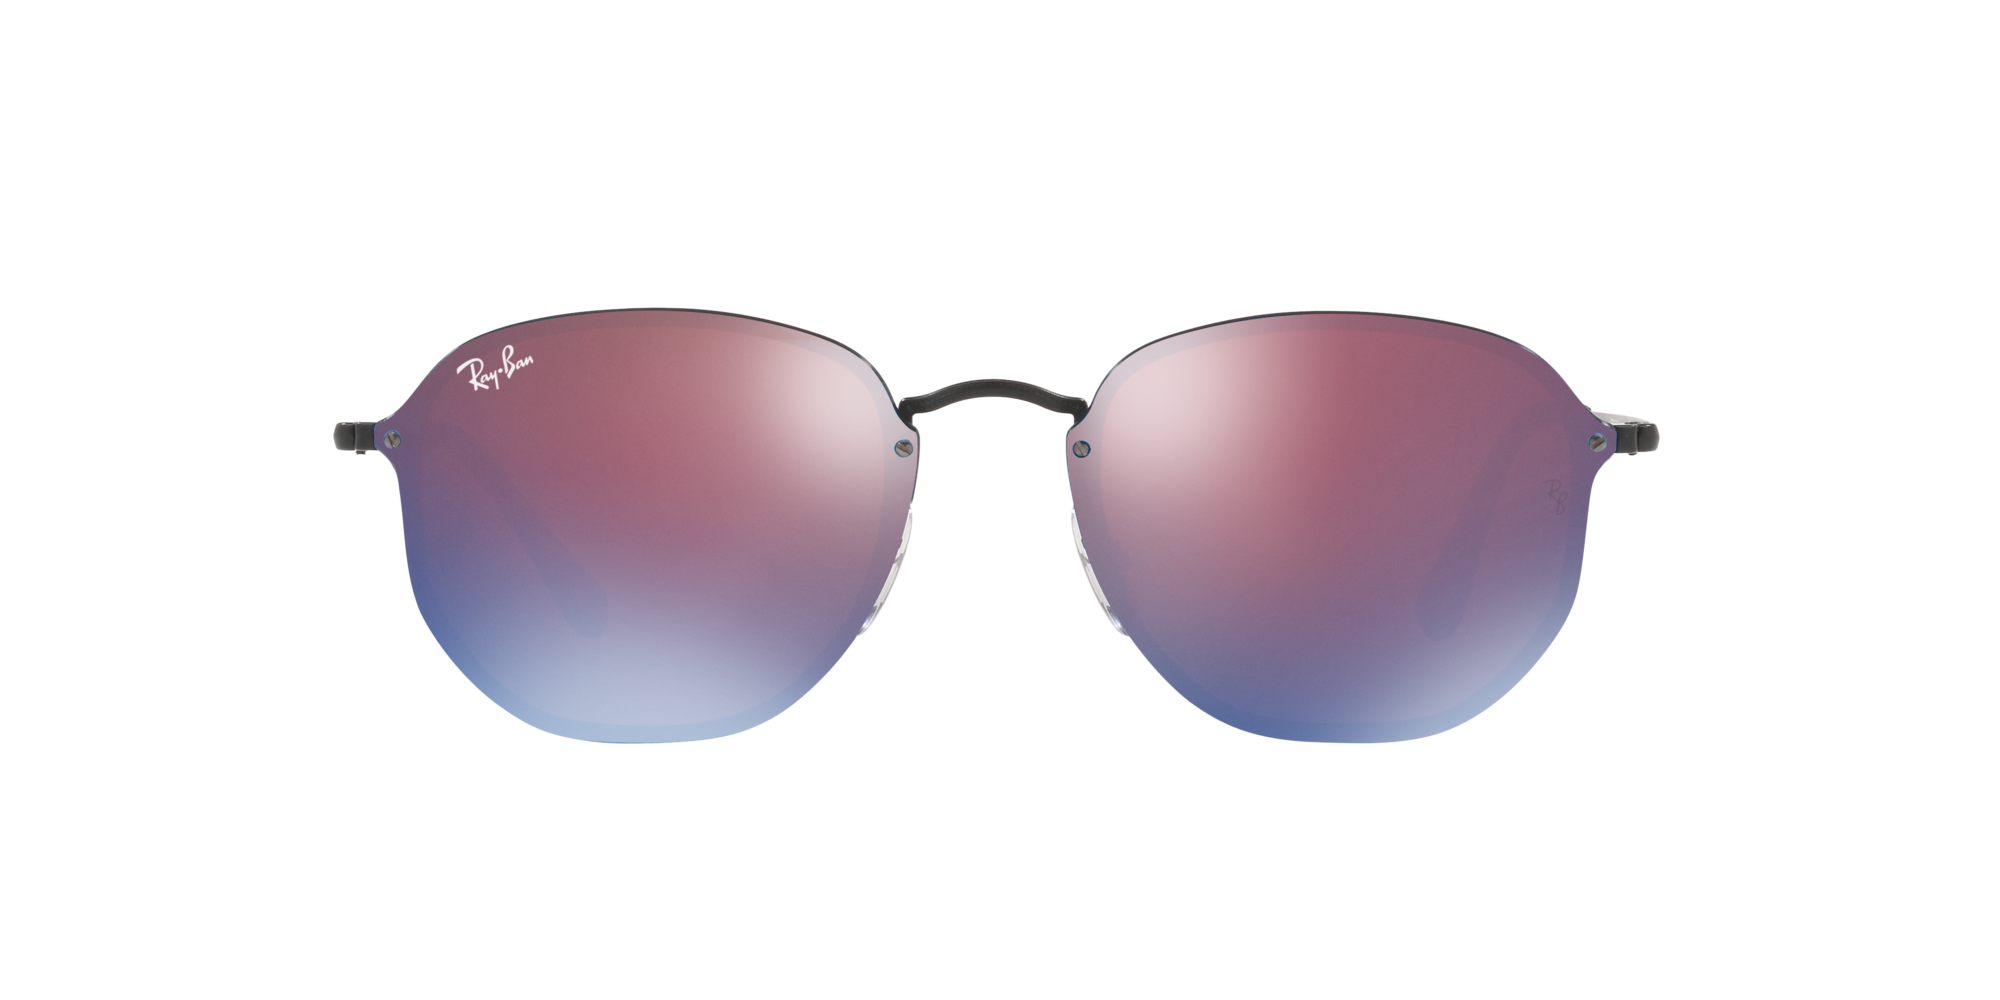 10f0c14ec5ca4 gafas de sol RAY-BAN RB 3579N 153 7V. 360° Product View 360° Product View  ...